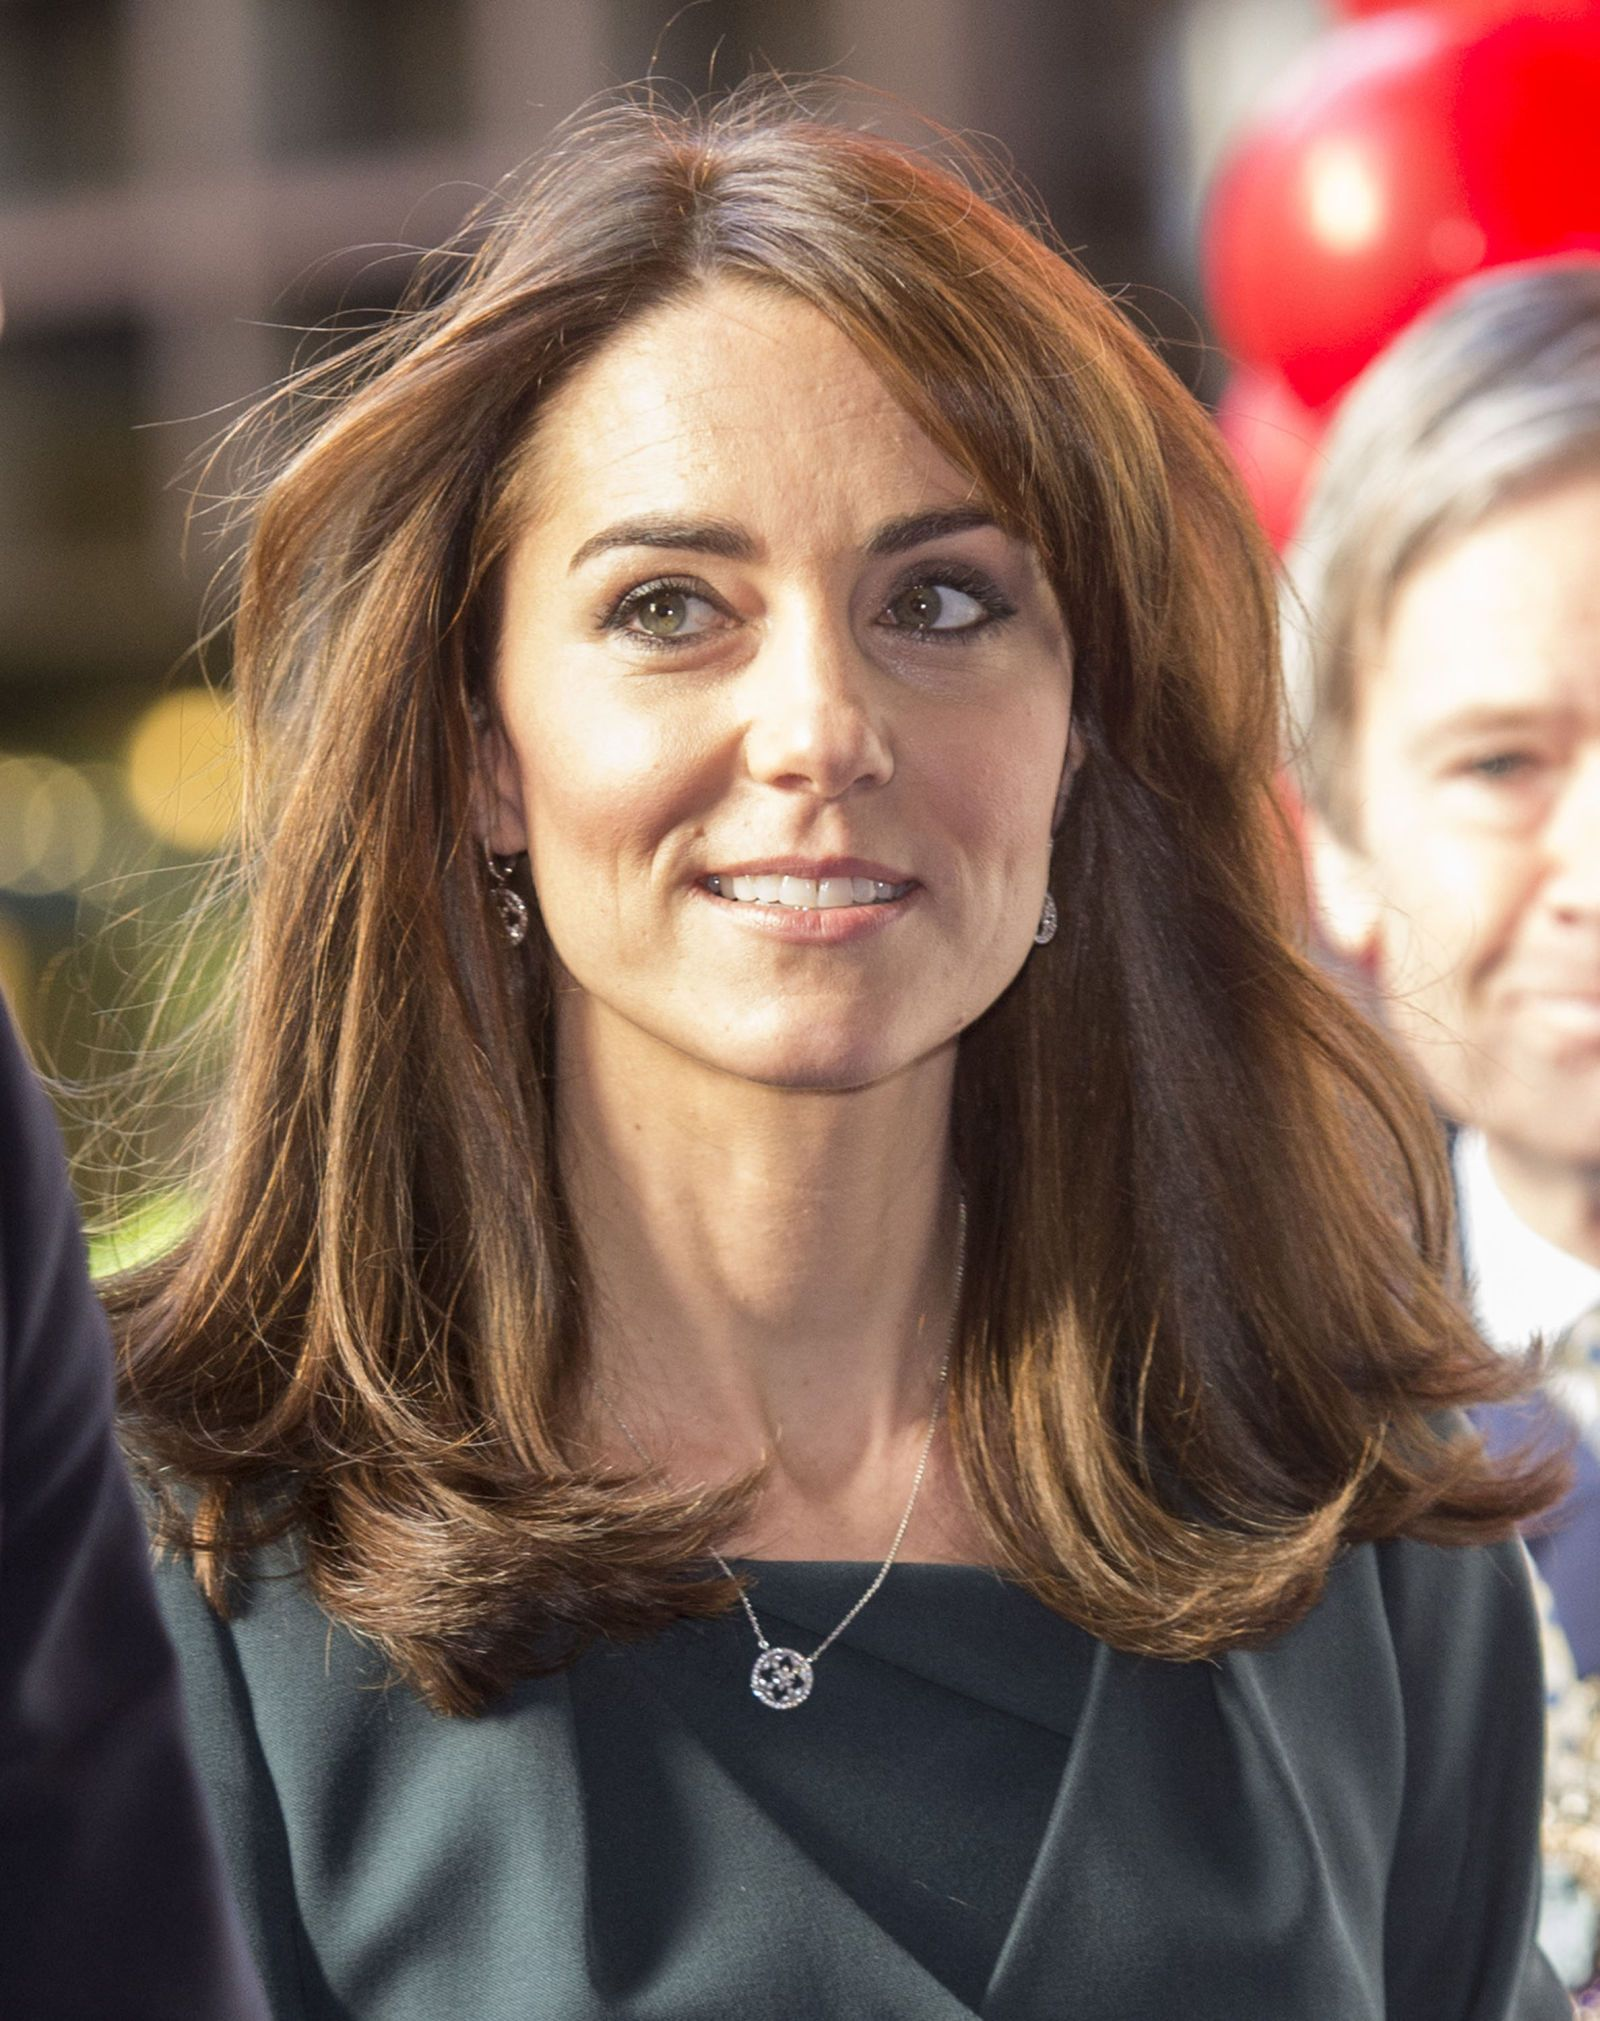 Kate Middleton Just Debuted An Even Shorter Hairstyle